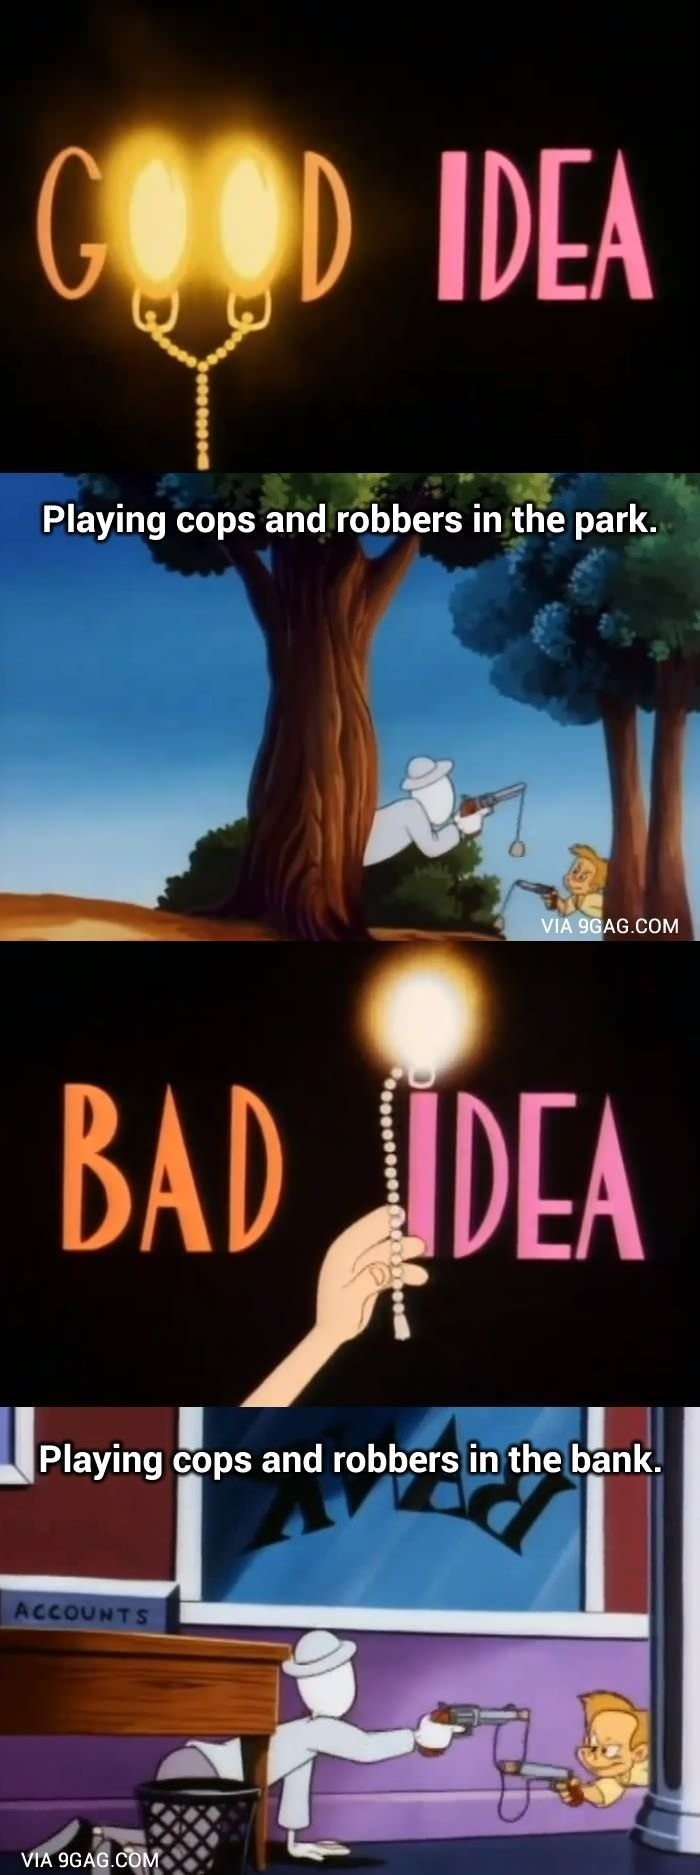 10 Elegant Good Idea Bad Idea Animaniacs 35 best animaniacs images on pinterest animation cartoon and 1